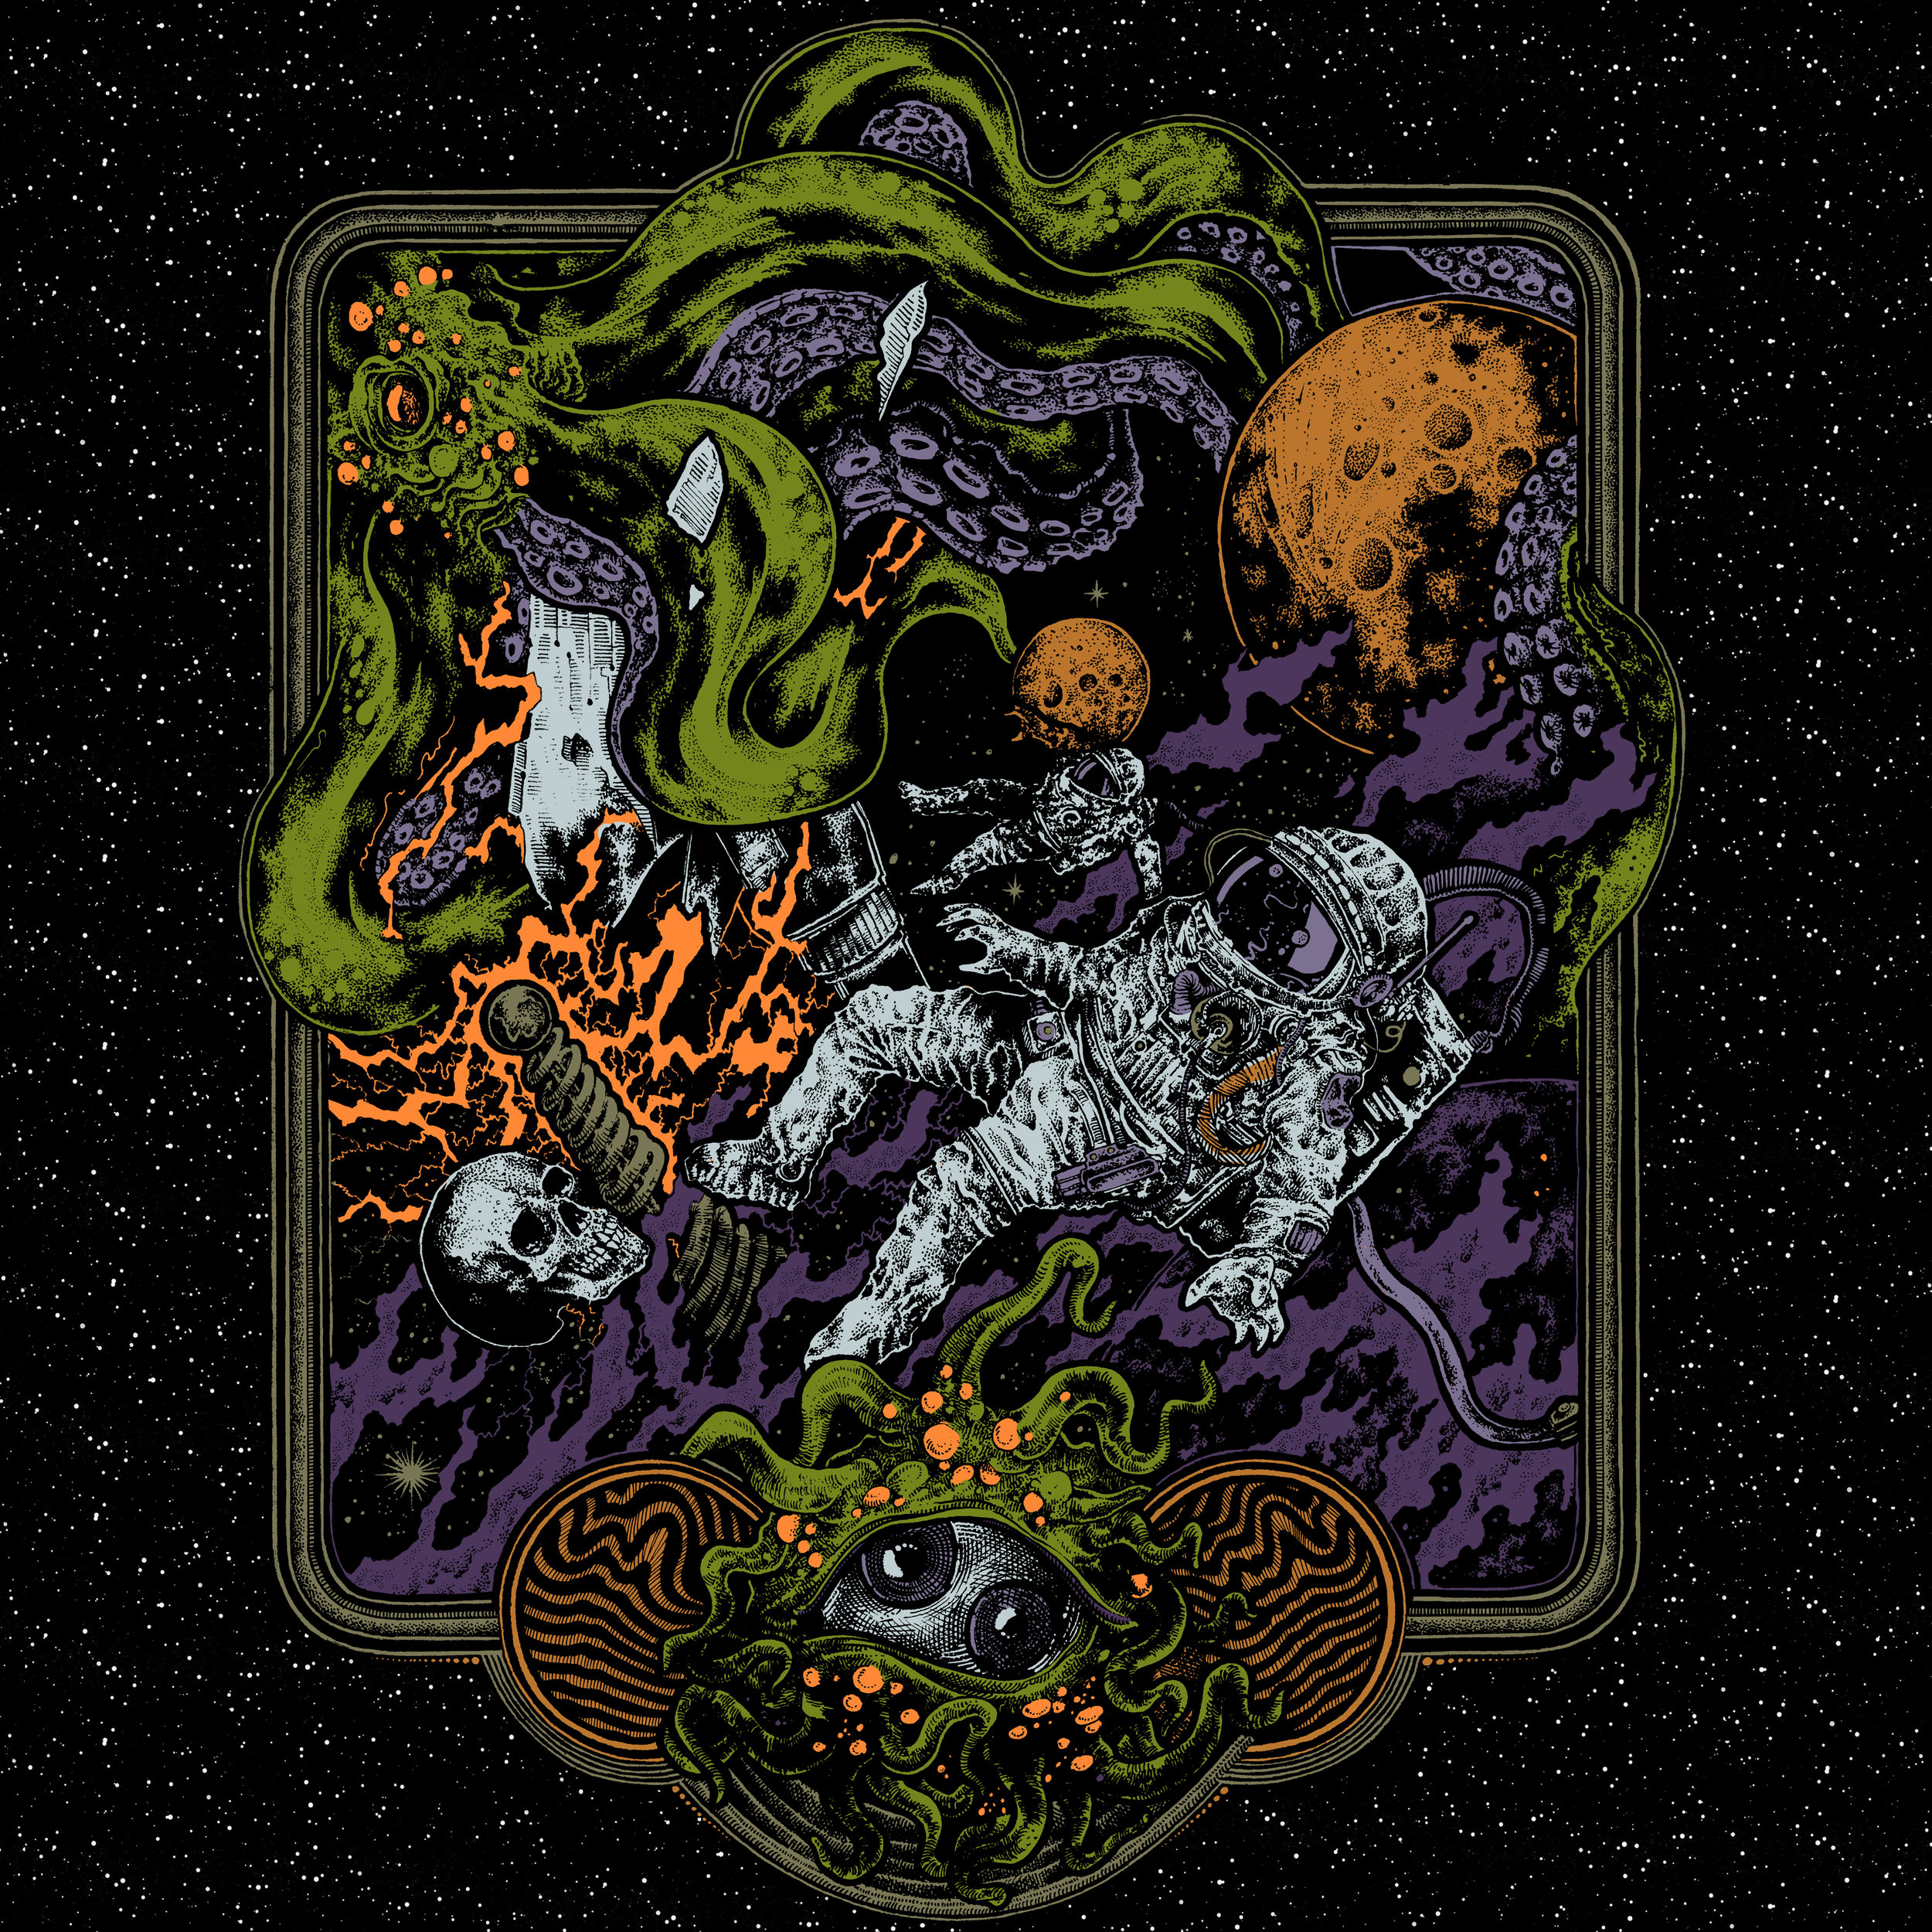 The Killchain - Album Review 08/04/19Equal parts driving stoner rock and weird darkwave, Ghost:Hello have released one of this year's most interesting records.